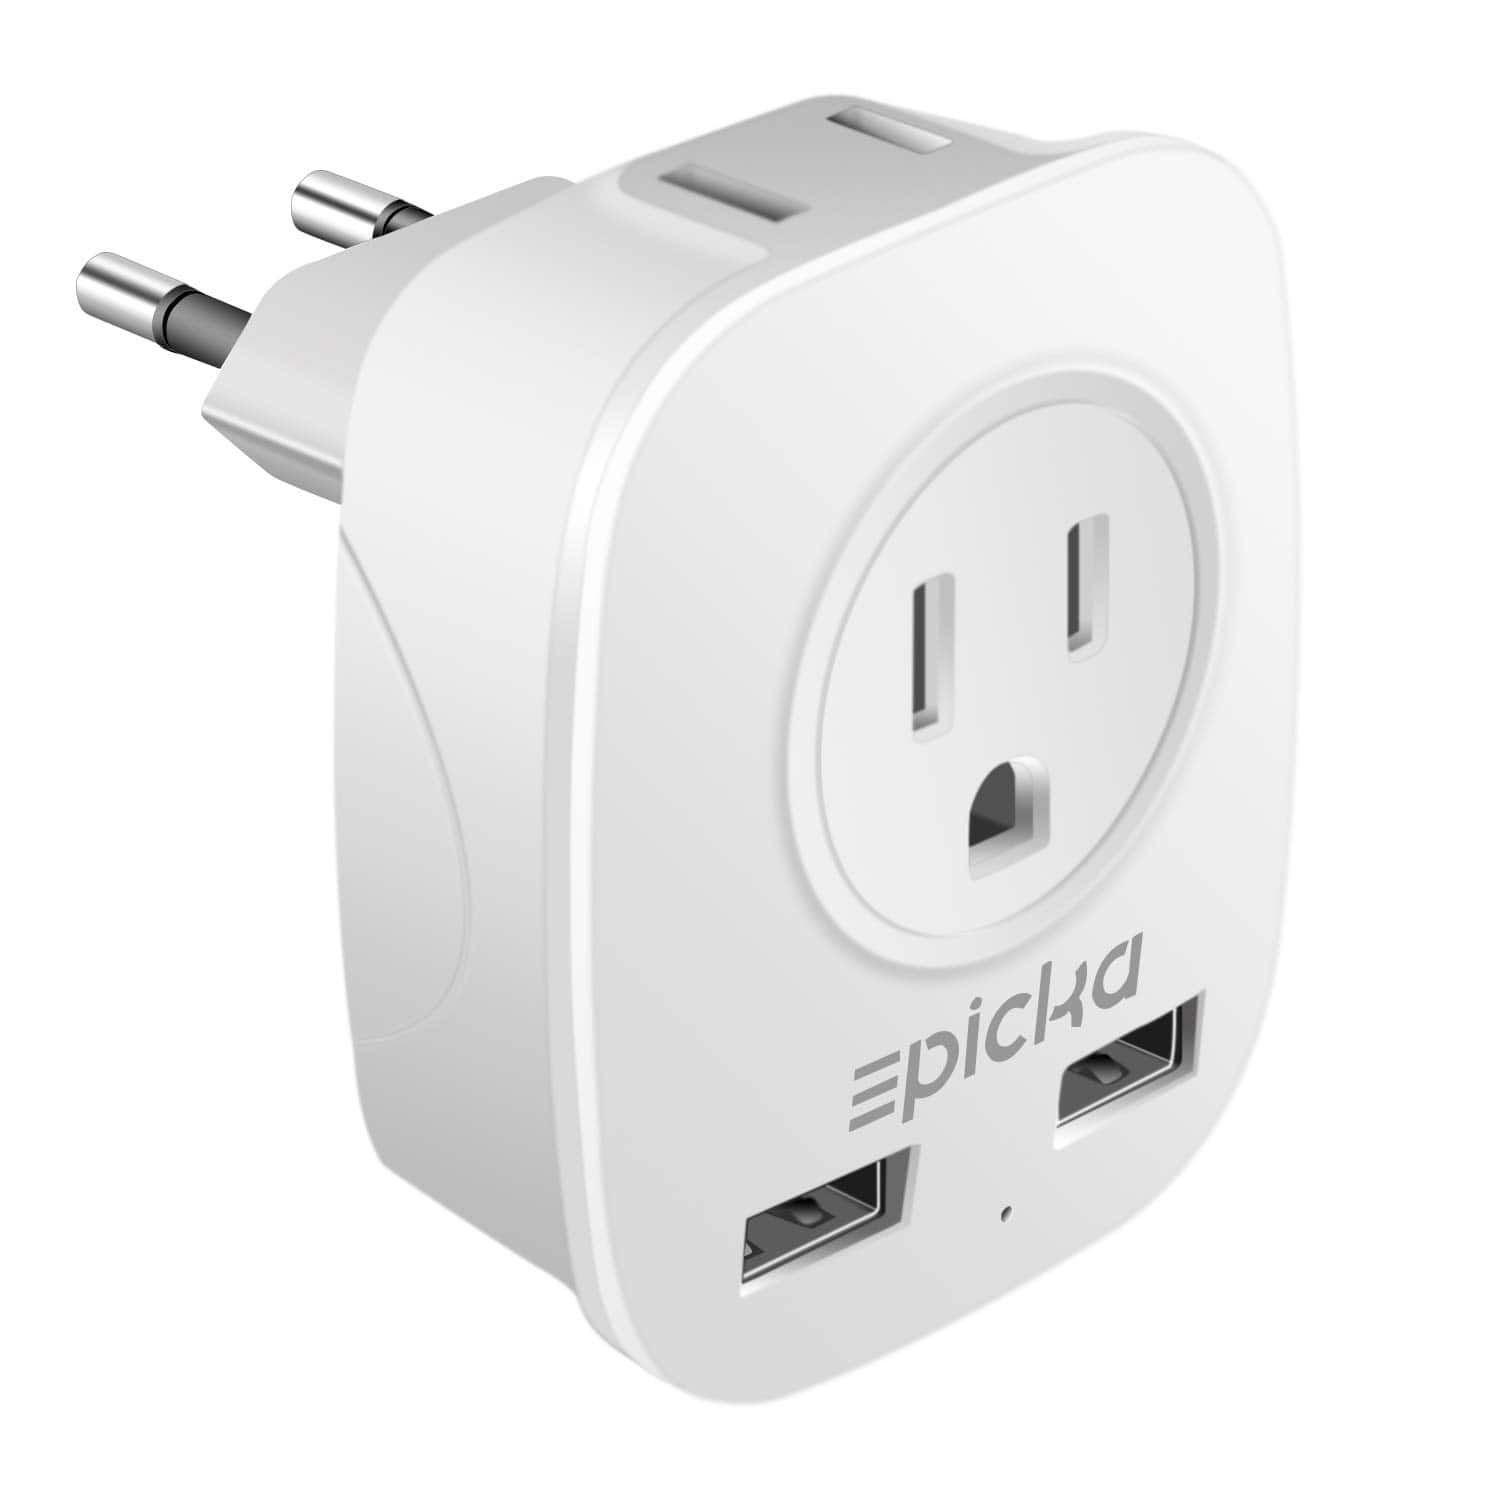 Travel Adapter Amazon European Travel Plug Adapter Epicka Wall Charger Adapter